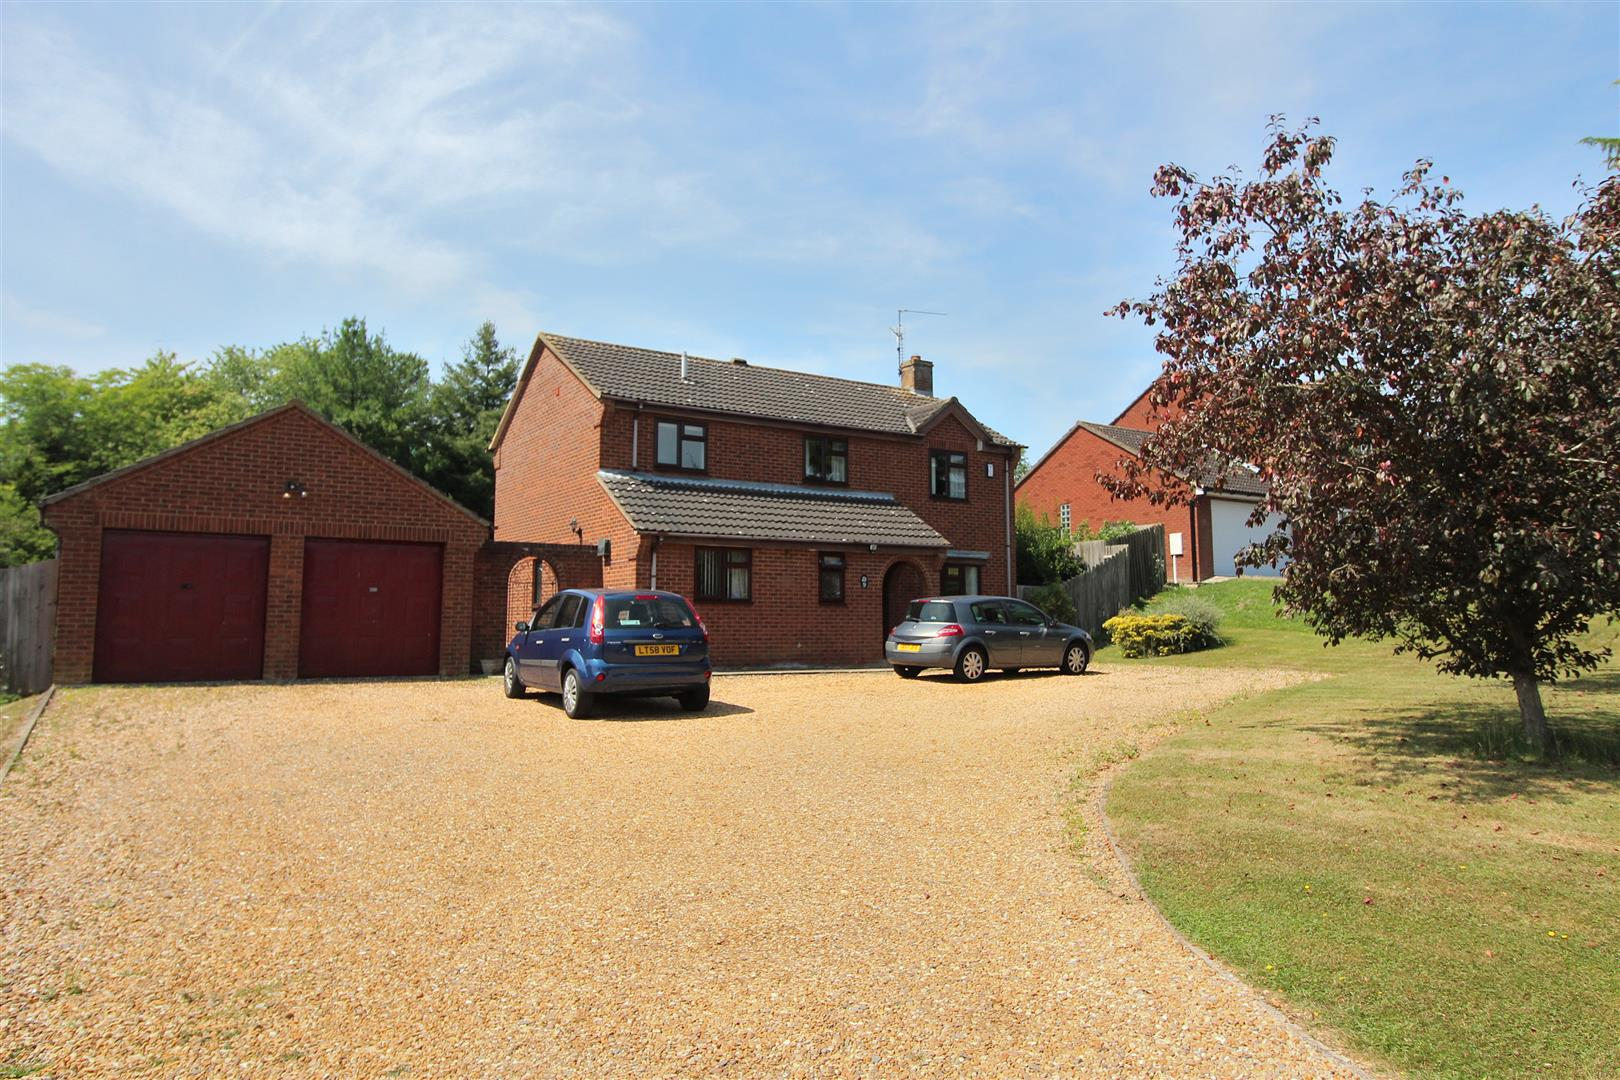 4 Bedrooms House for sale in White Delves, Wellingborough